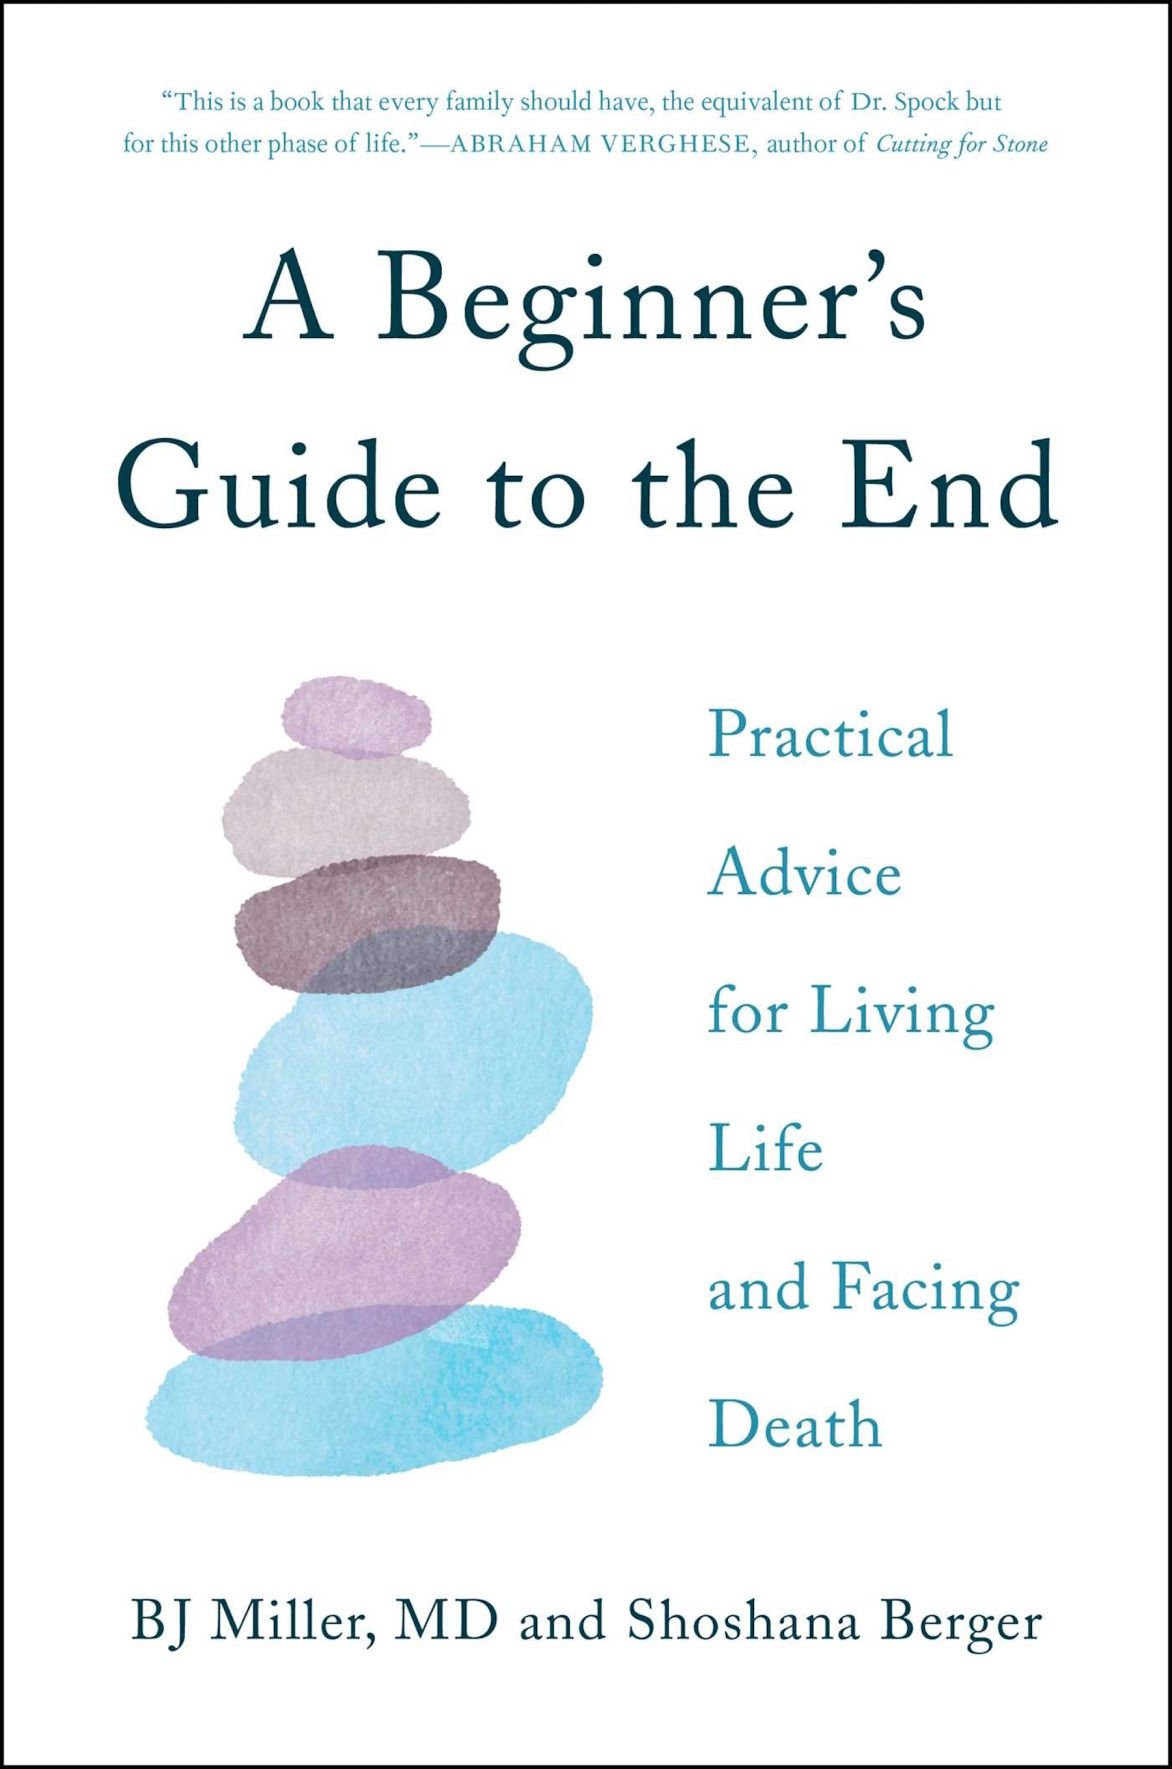 A Beginner's Guide to The End.jpg